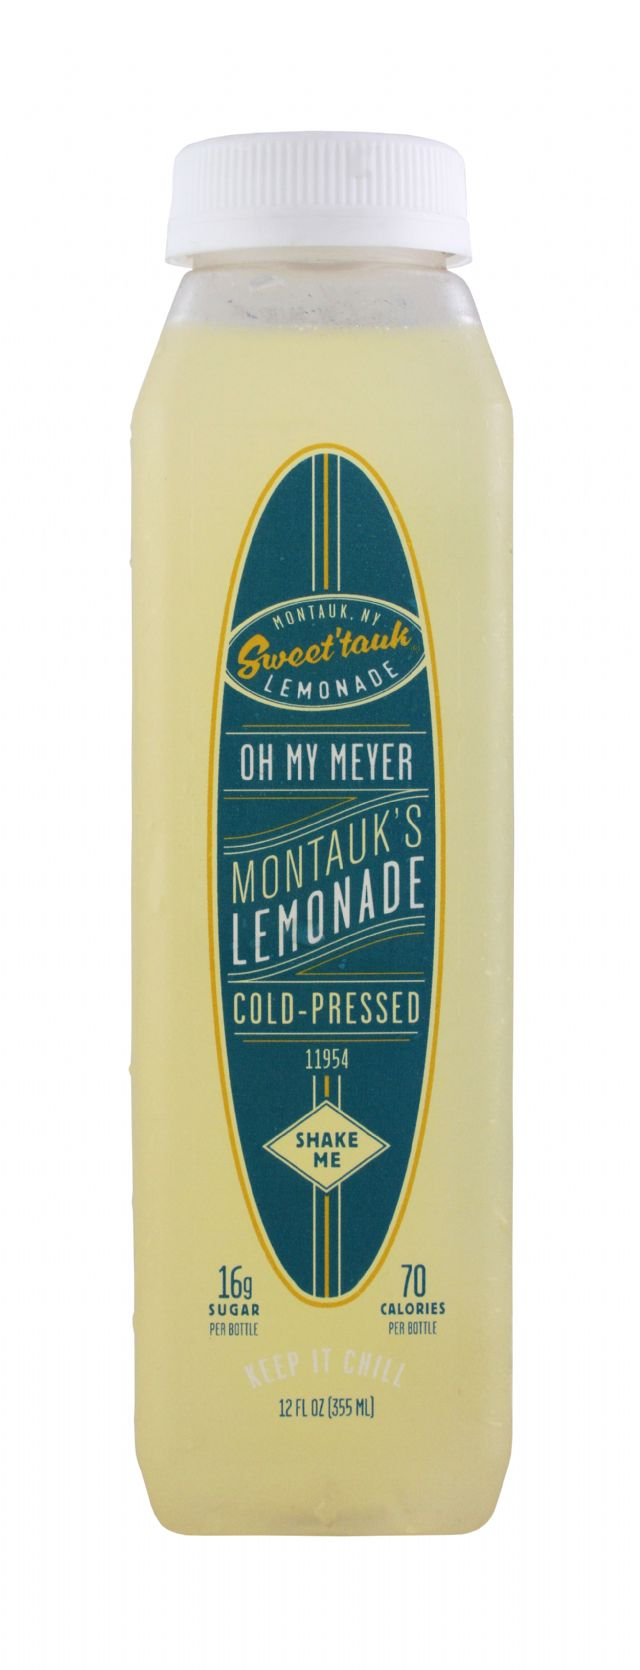 Sweet'tauk Lemonade: SweetTaulk OhMyMeyer Front